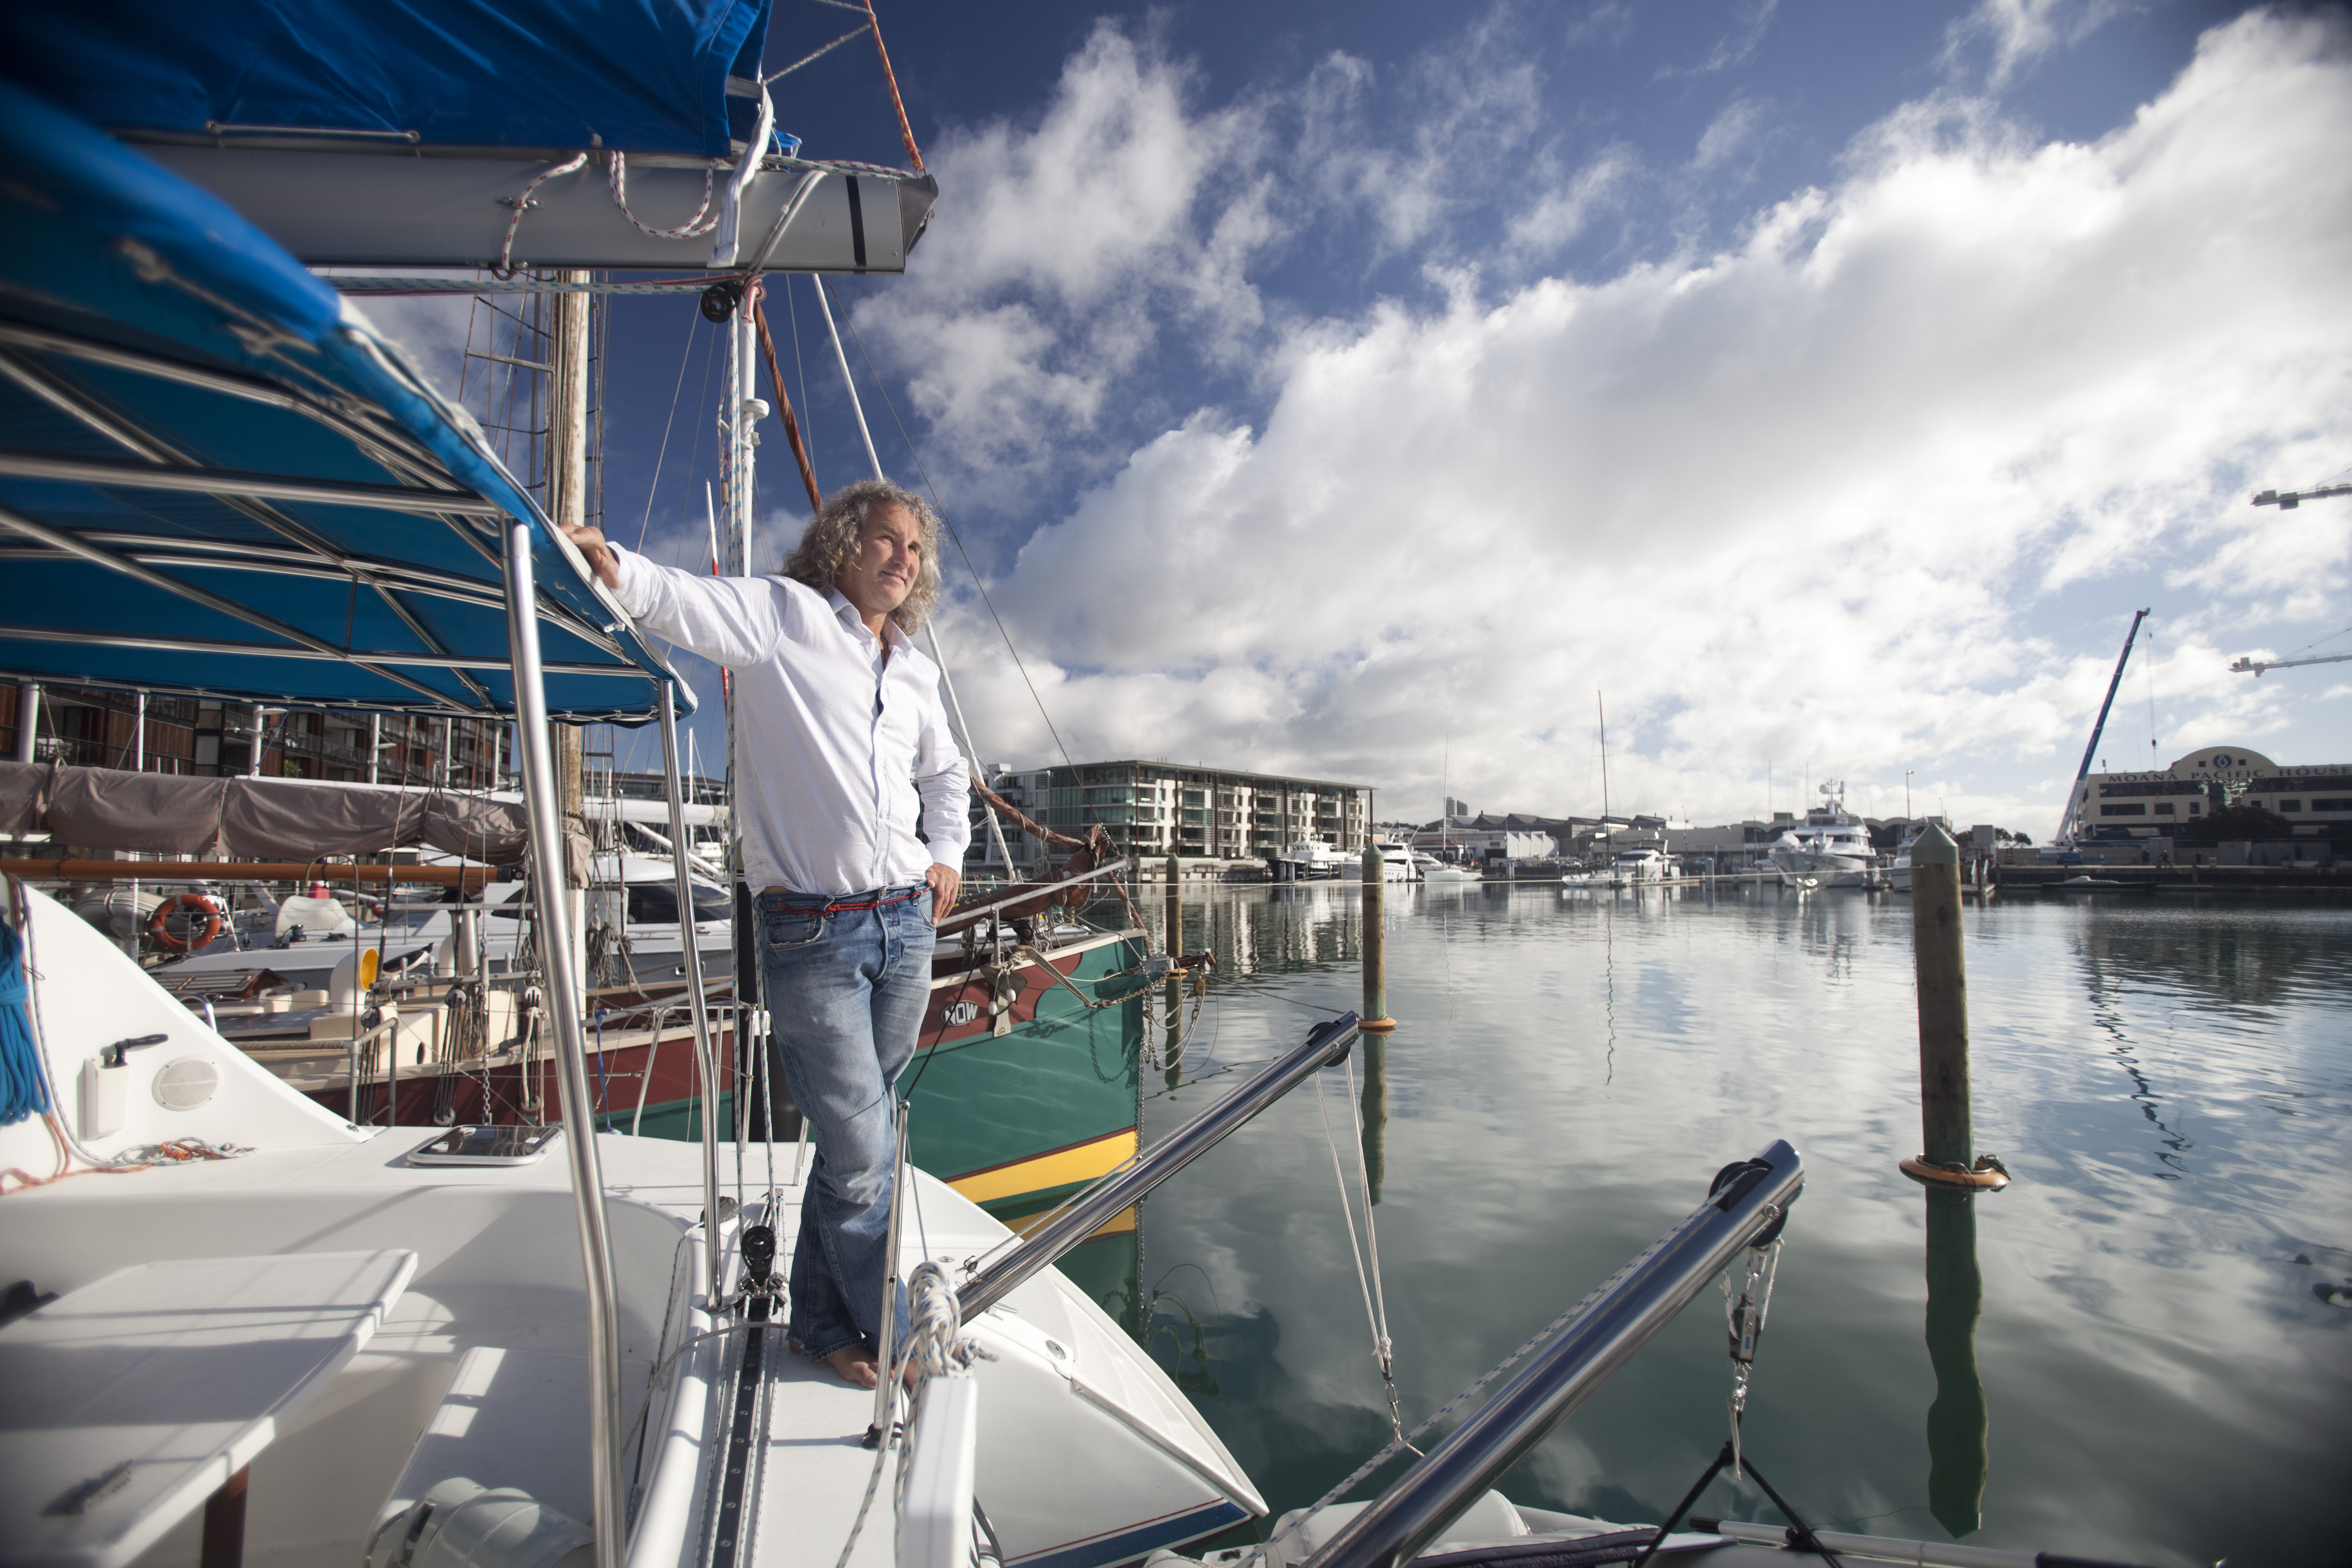 People choosing to live on boats - NZ Herald